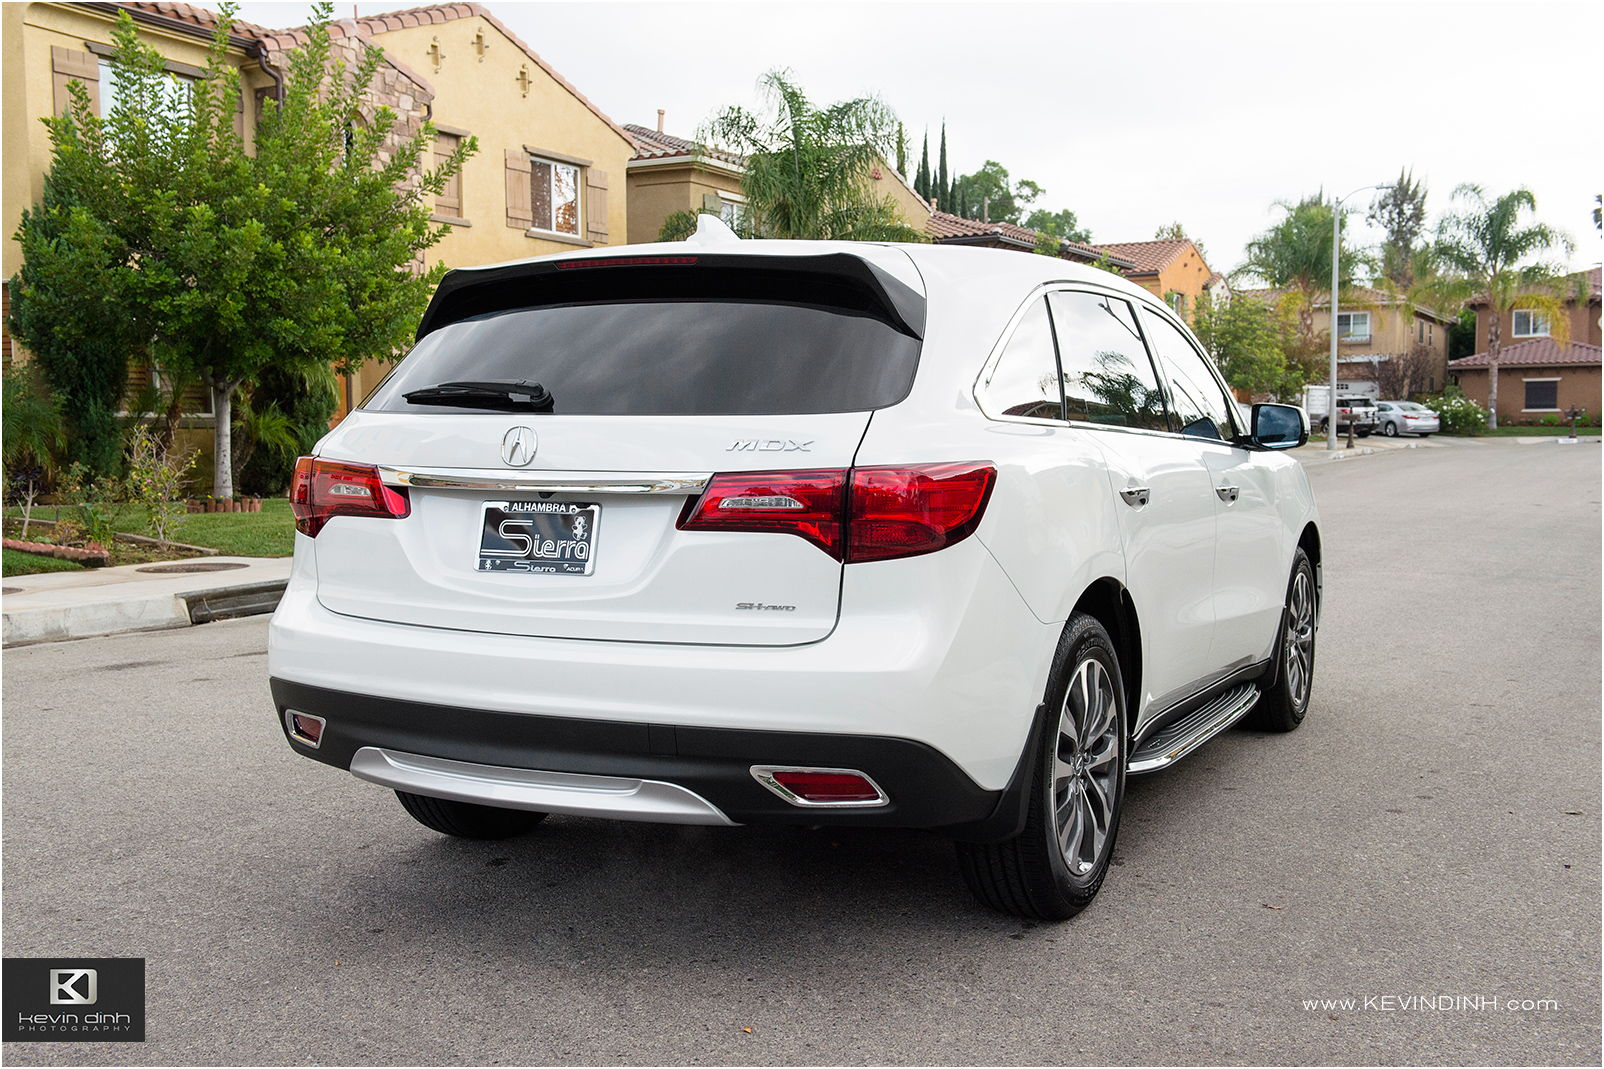 2015 white acura mdx tech pkg photos - AcuraZine - Acura Enthusiast Community